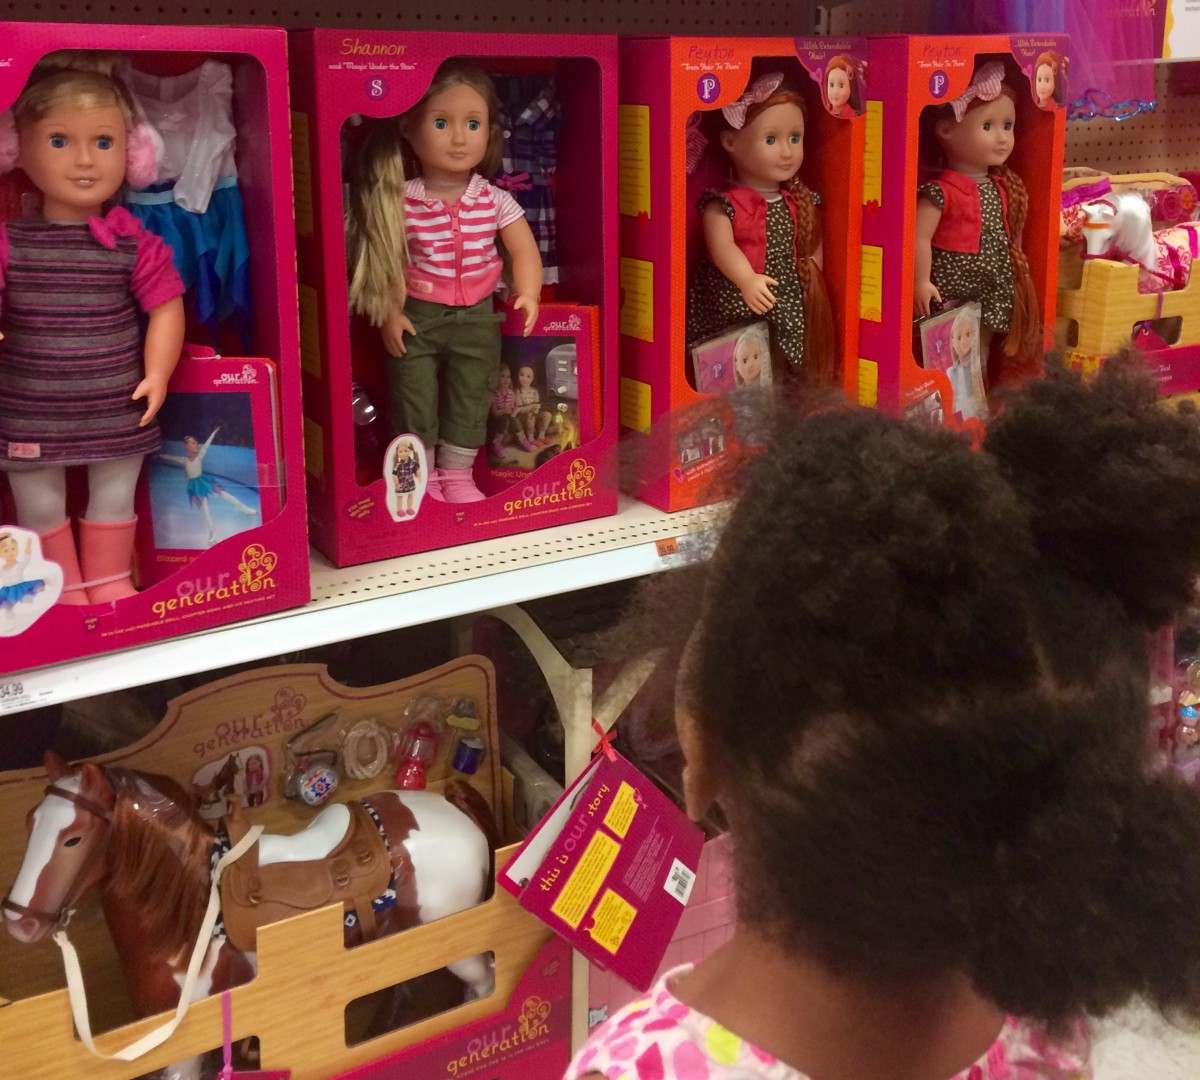 Why Are All The White Dolls Sitting Together On The Target